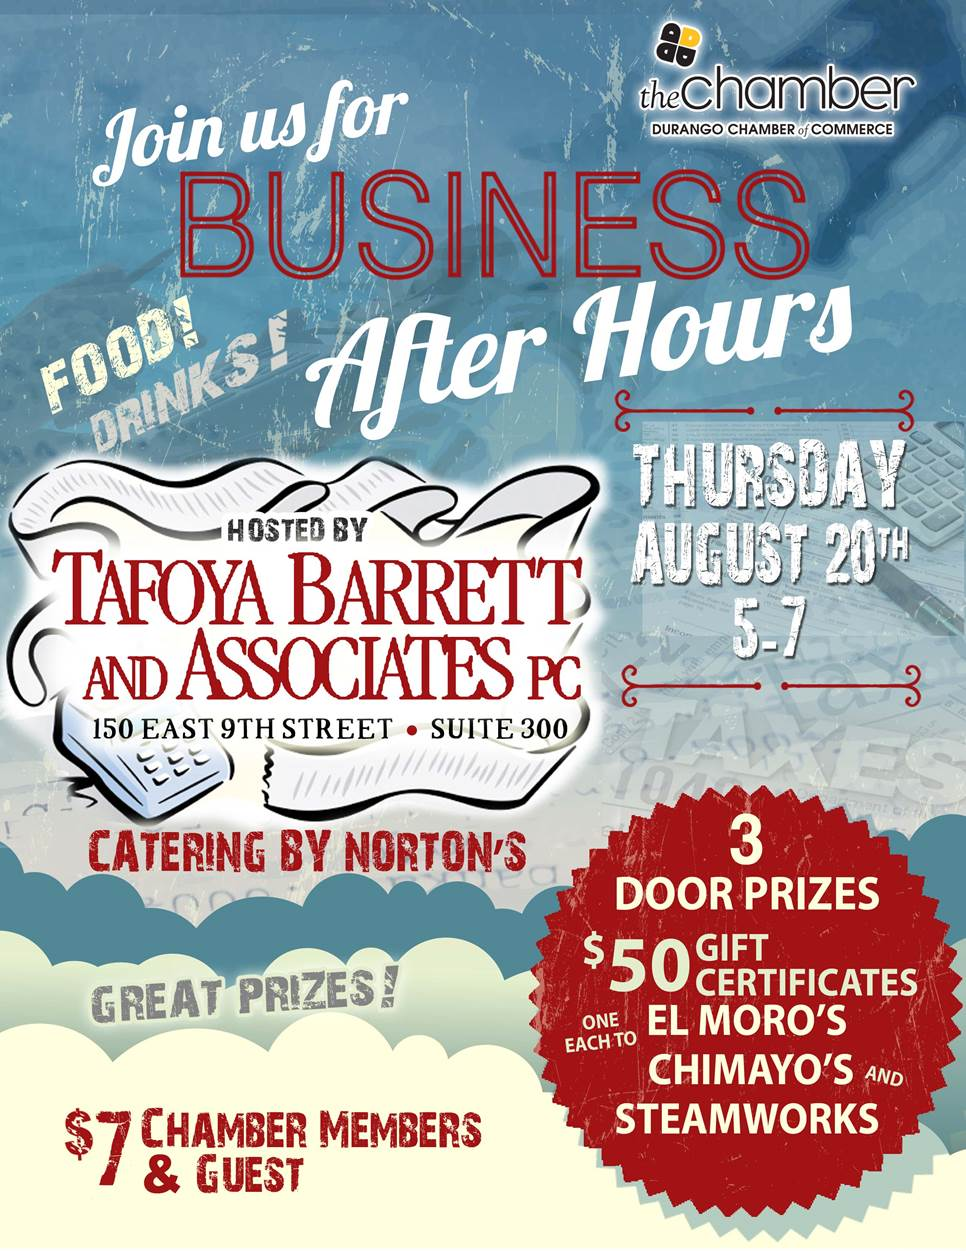 join us for business after hours